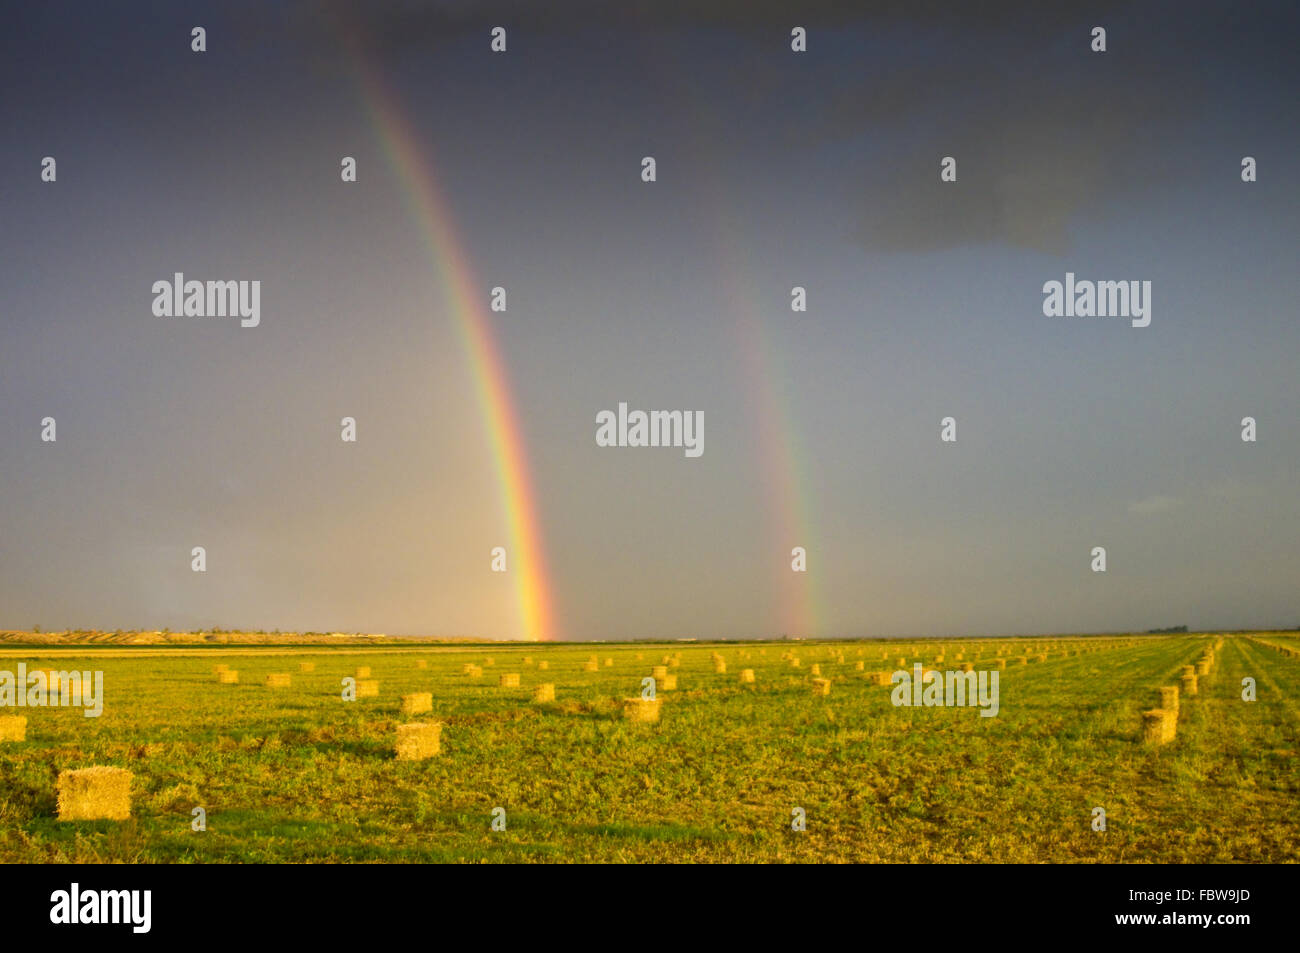 Rural Rainbows - Stock Image